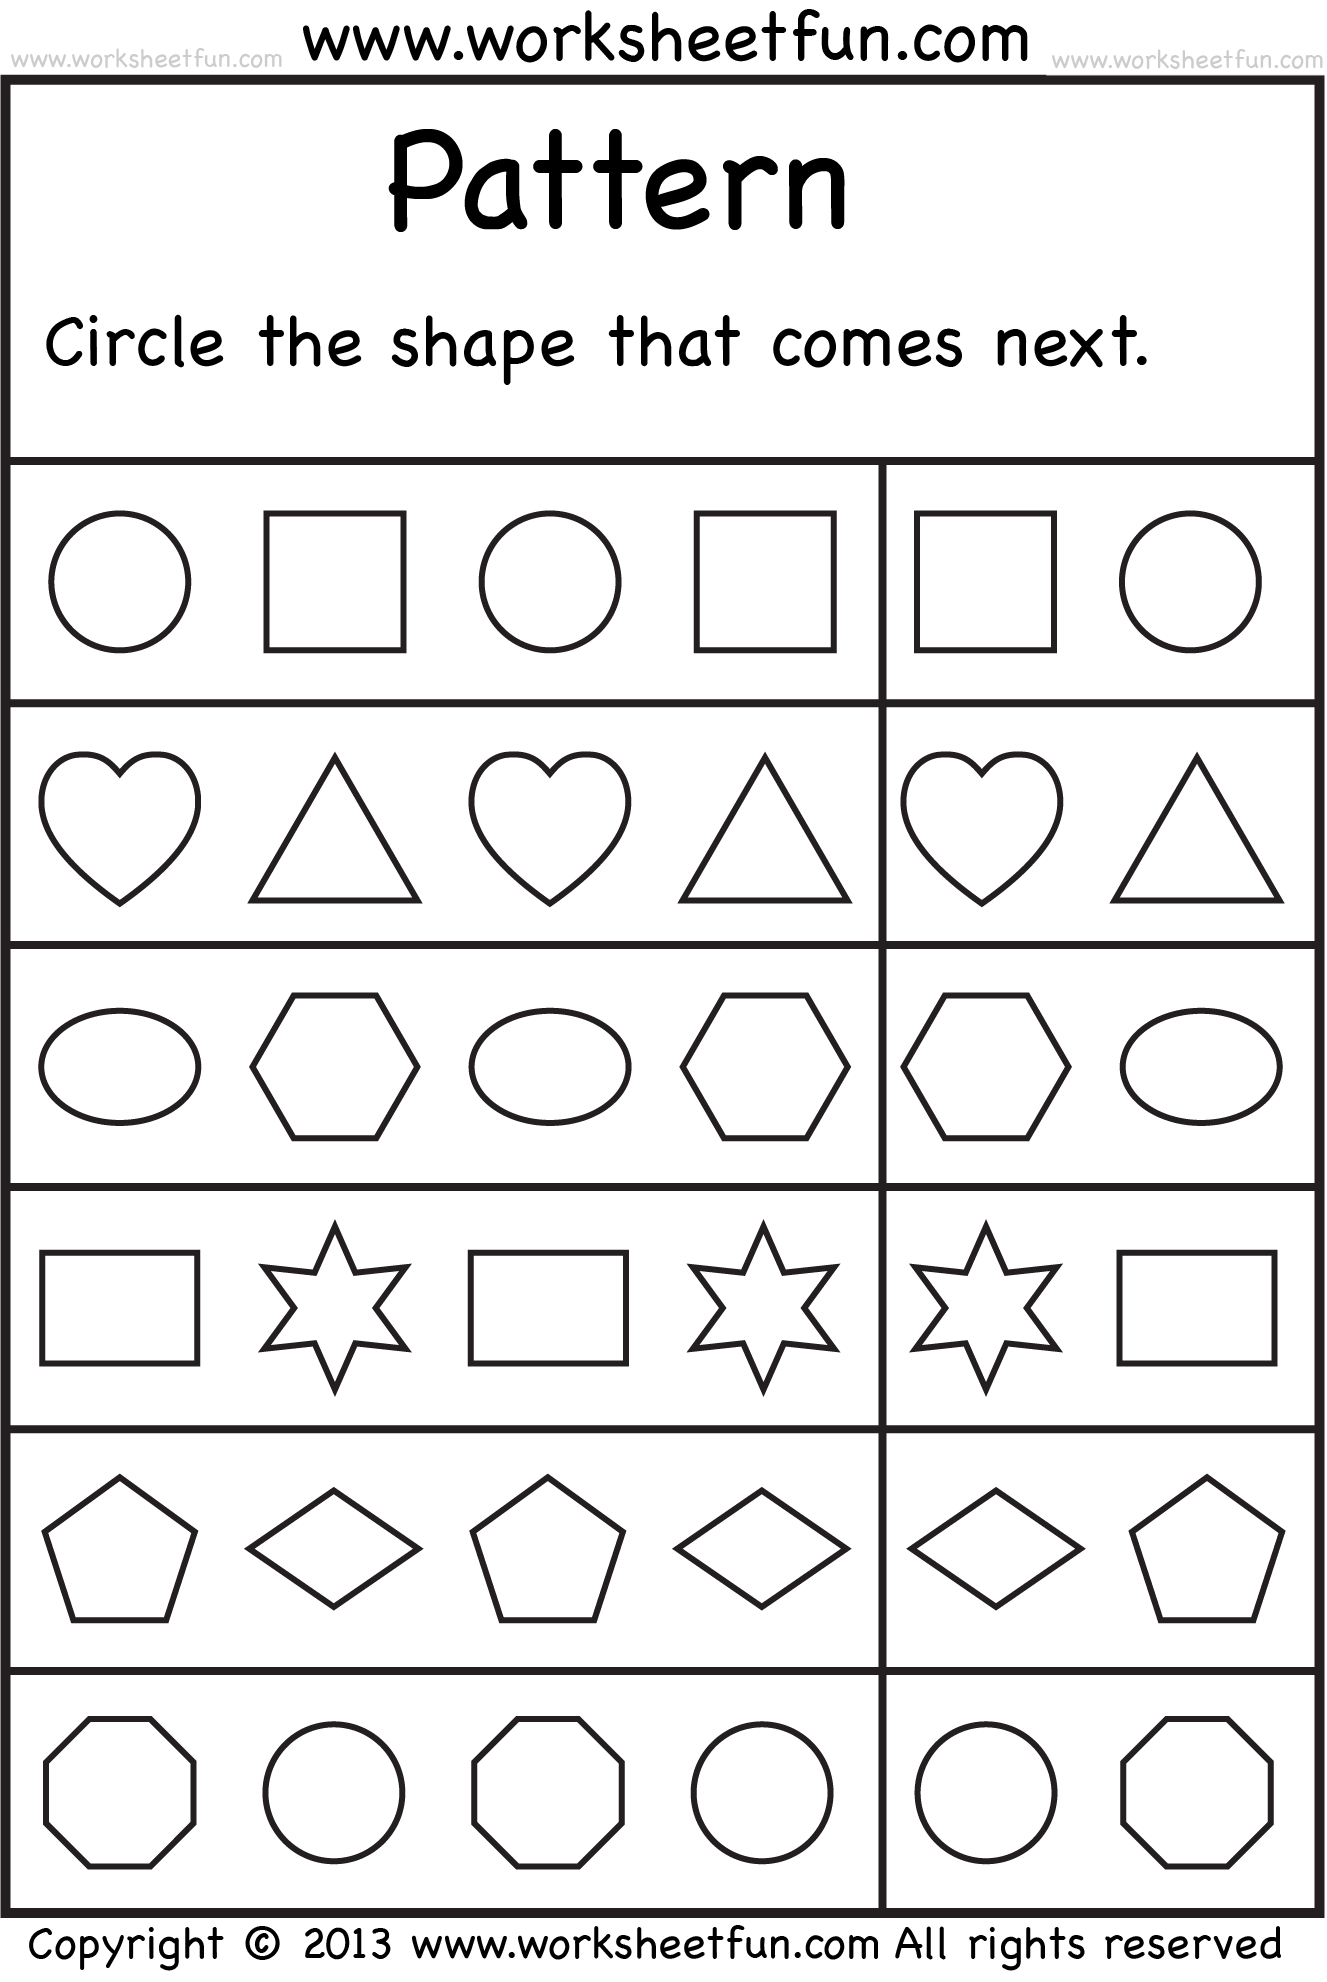 Proatmealus  Terrific  Images About School Worksheets On Pinterest  Number Words  With Glamorous  Images About School Worksheets On Pinterest  Number Words Alphabet Worksheets And Free Printable Kindergarten Worksheets With Beauteous Sentences And Sentence Fragments Worksheets Also  Digit Addition With And Without Regrouping Worksheets In Addition Math Comparison Worksheets And French Ks Worksheets As Well As Worksheets On Graphs Additionally Triangles Missing Angles Worksheet From Pinterestcom With Proatmealus  Glamorous  Images About School Worksheets On Pinterest  Number Words  With Beauteous  Images About School Worksheets On Pinterest  Number Words Alphabet Worksheets And Free Printable Kindergarten Worksheets And Terrific Sentences And Sentence Fragments Worksheets Also  Digit Addition With And Without Regrouping Worksheets In Addition Math Comparison Worksheets From Pinterestcom